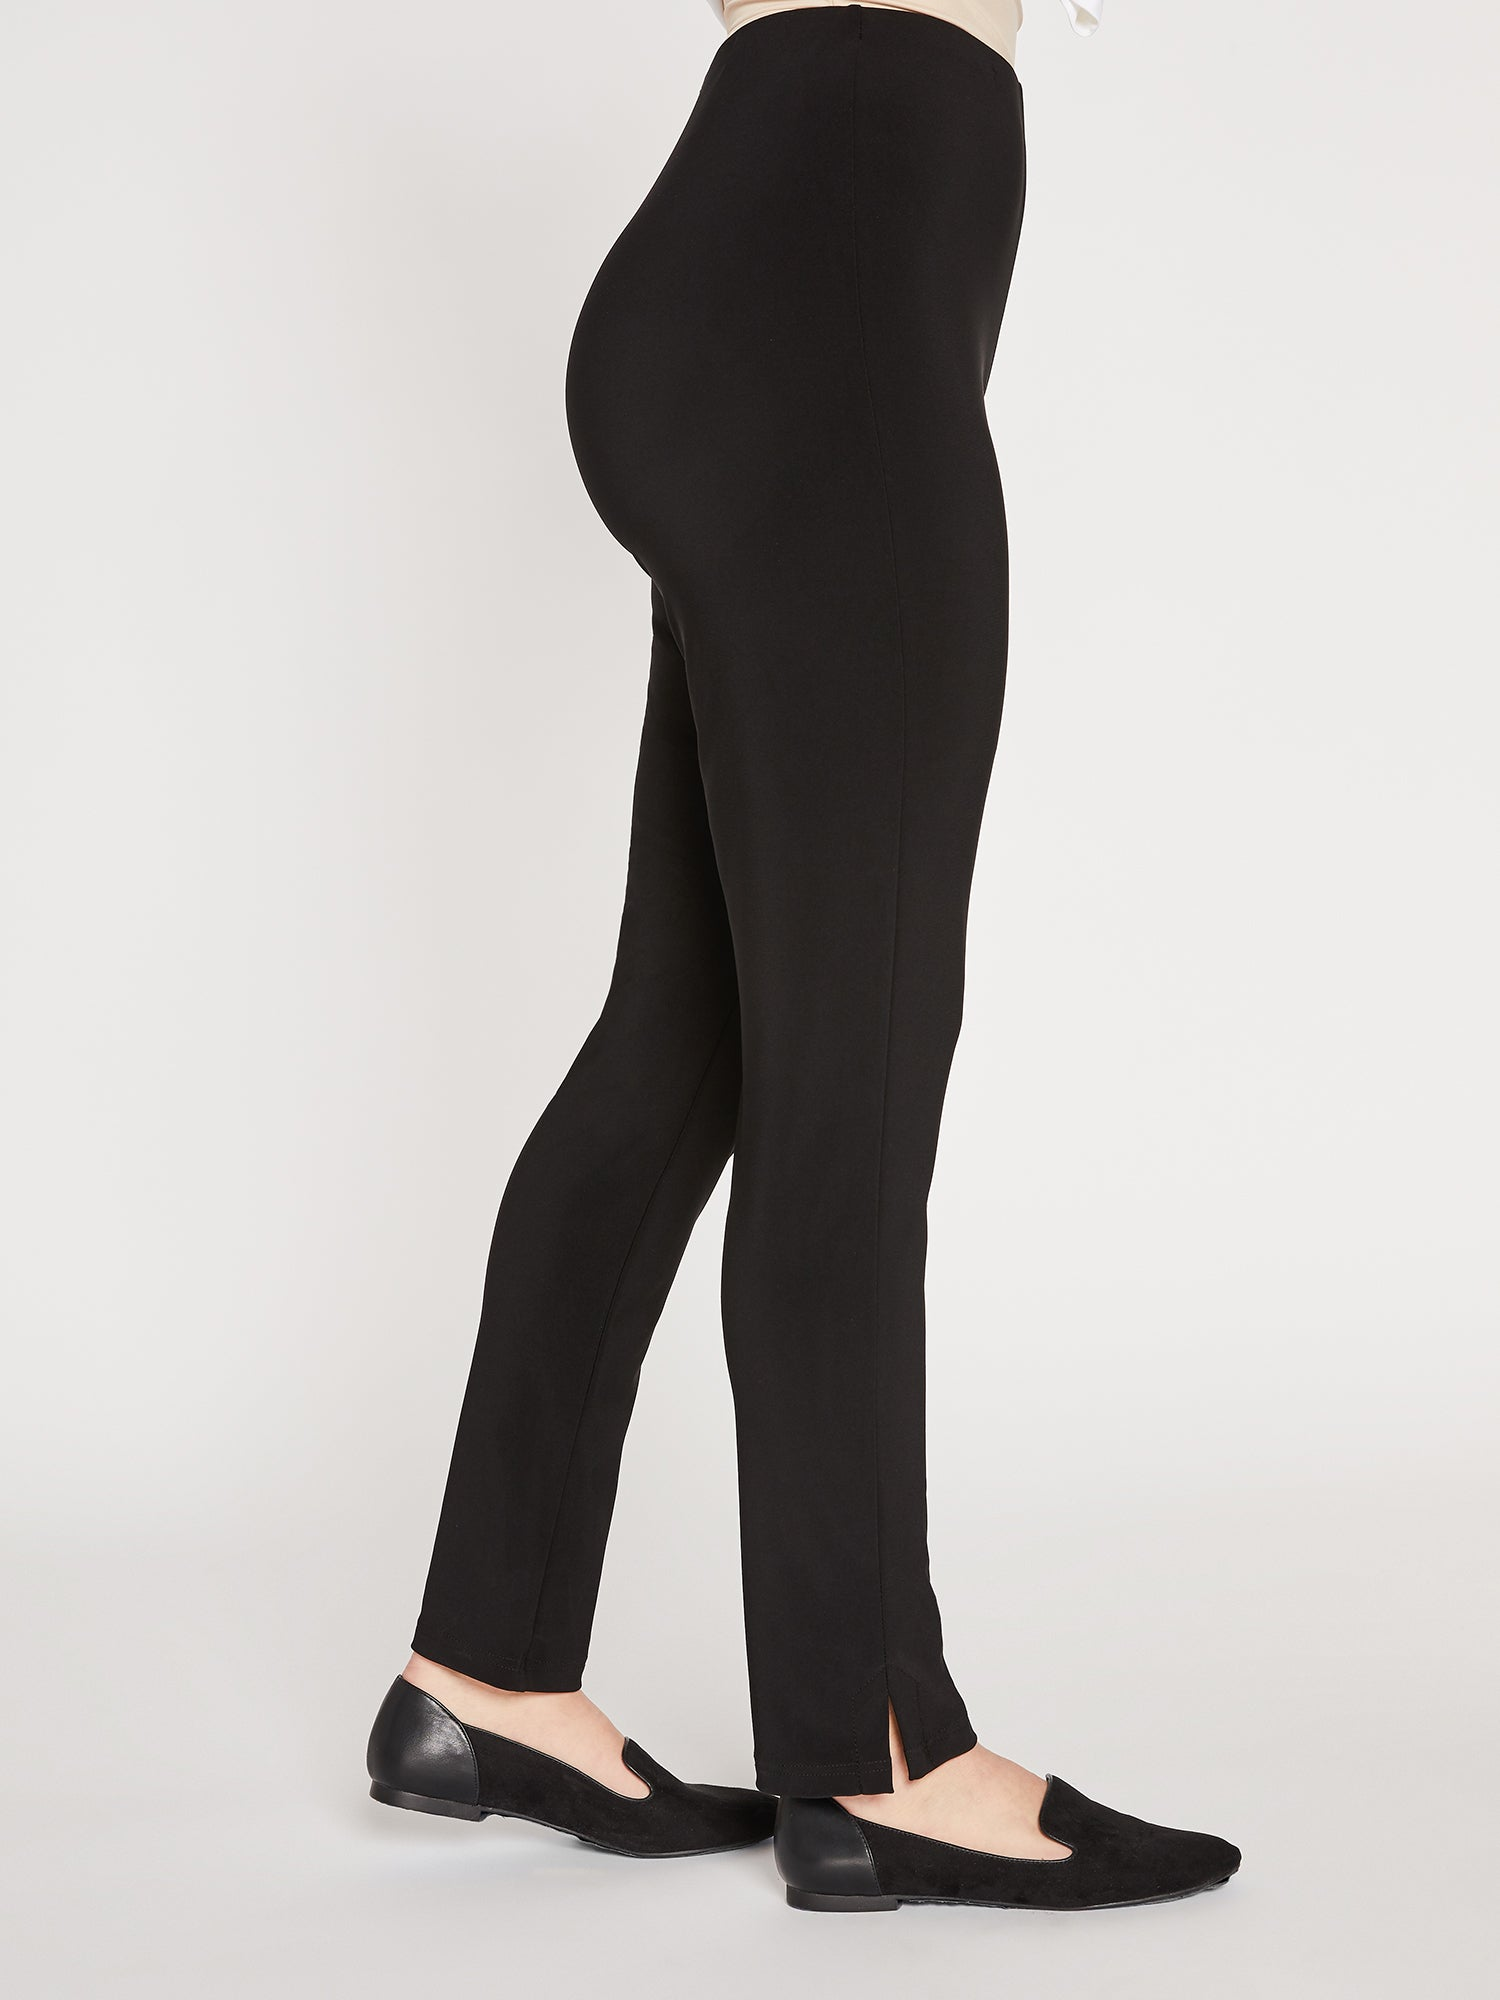 Sympli - Narrow Pant Long - Black